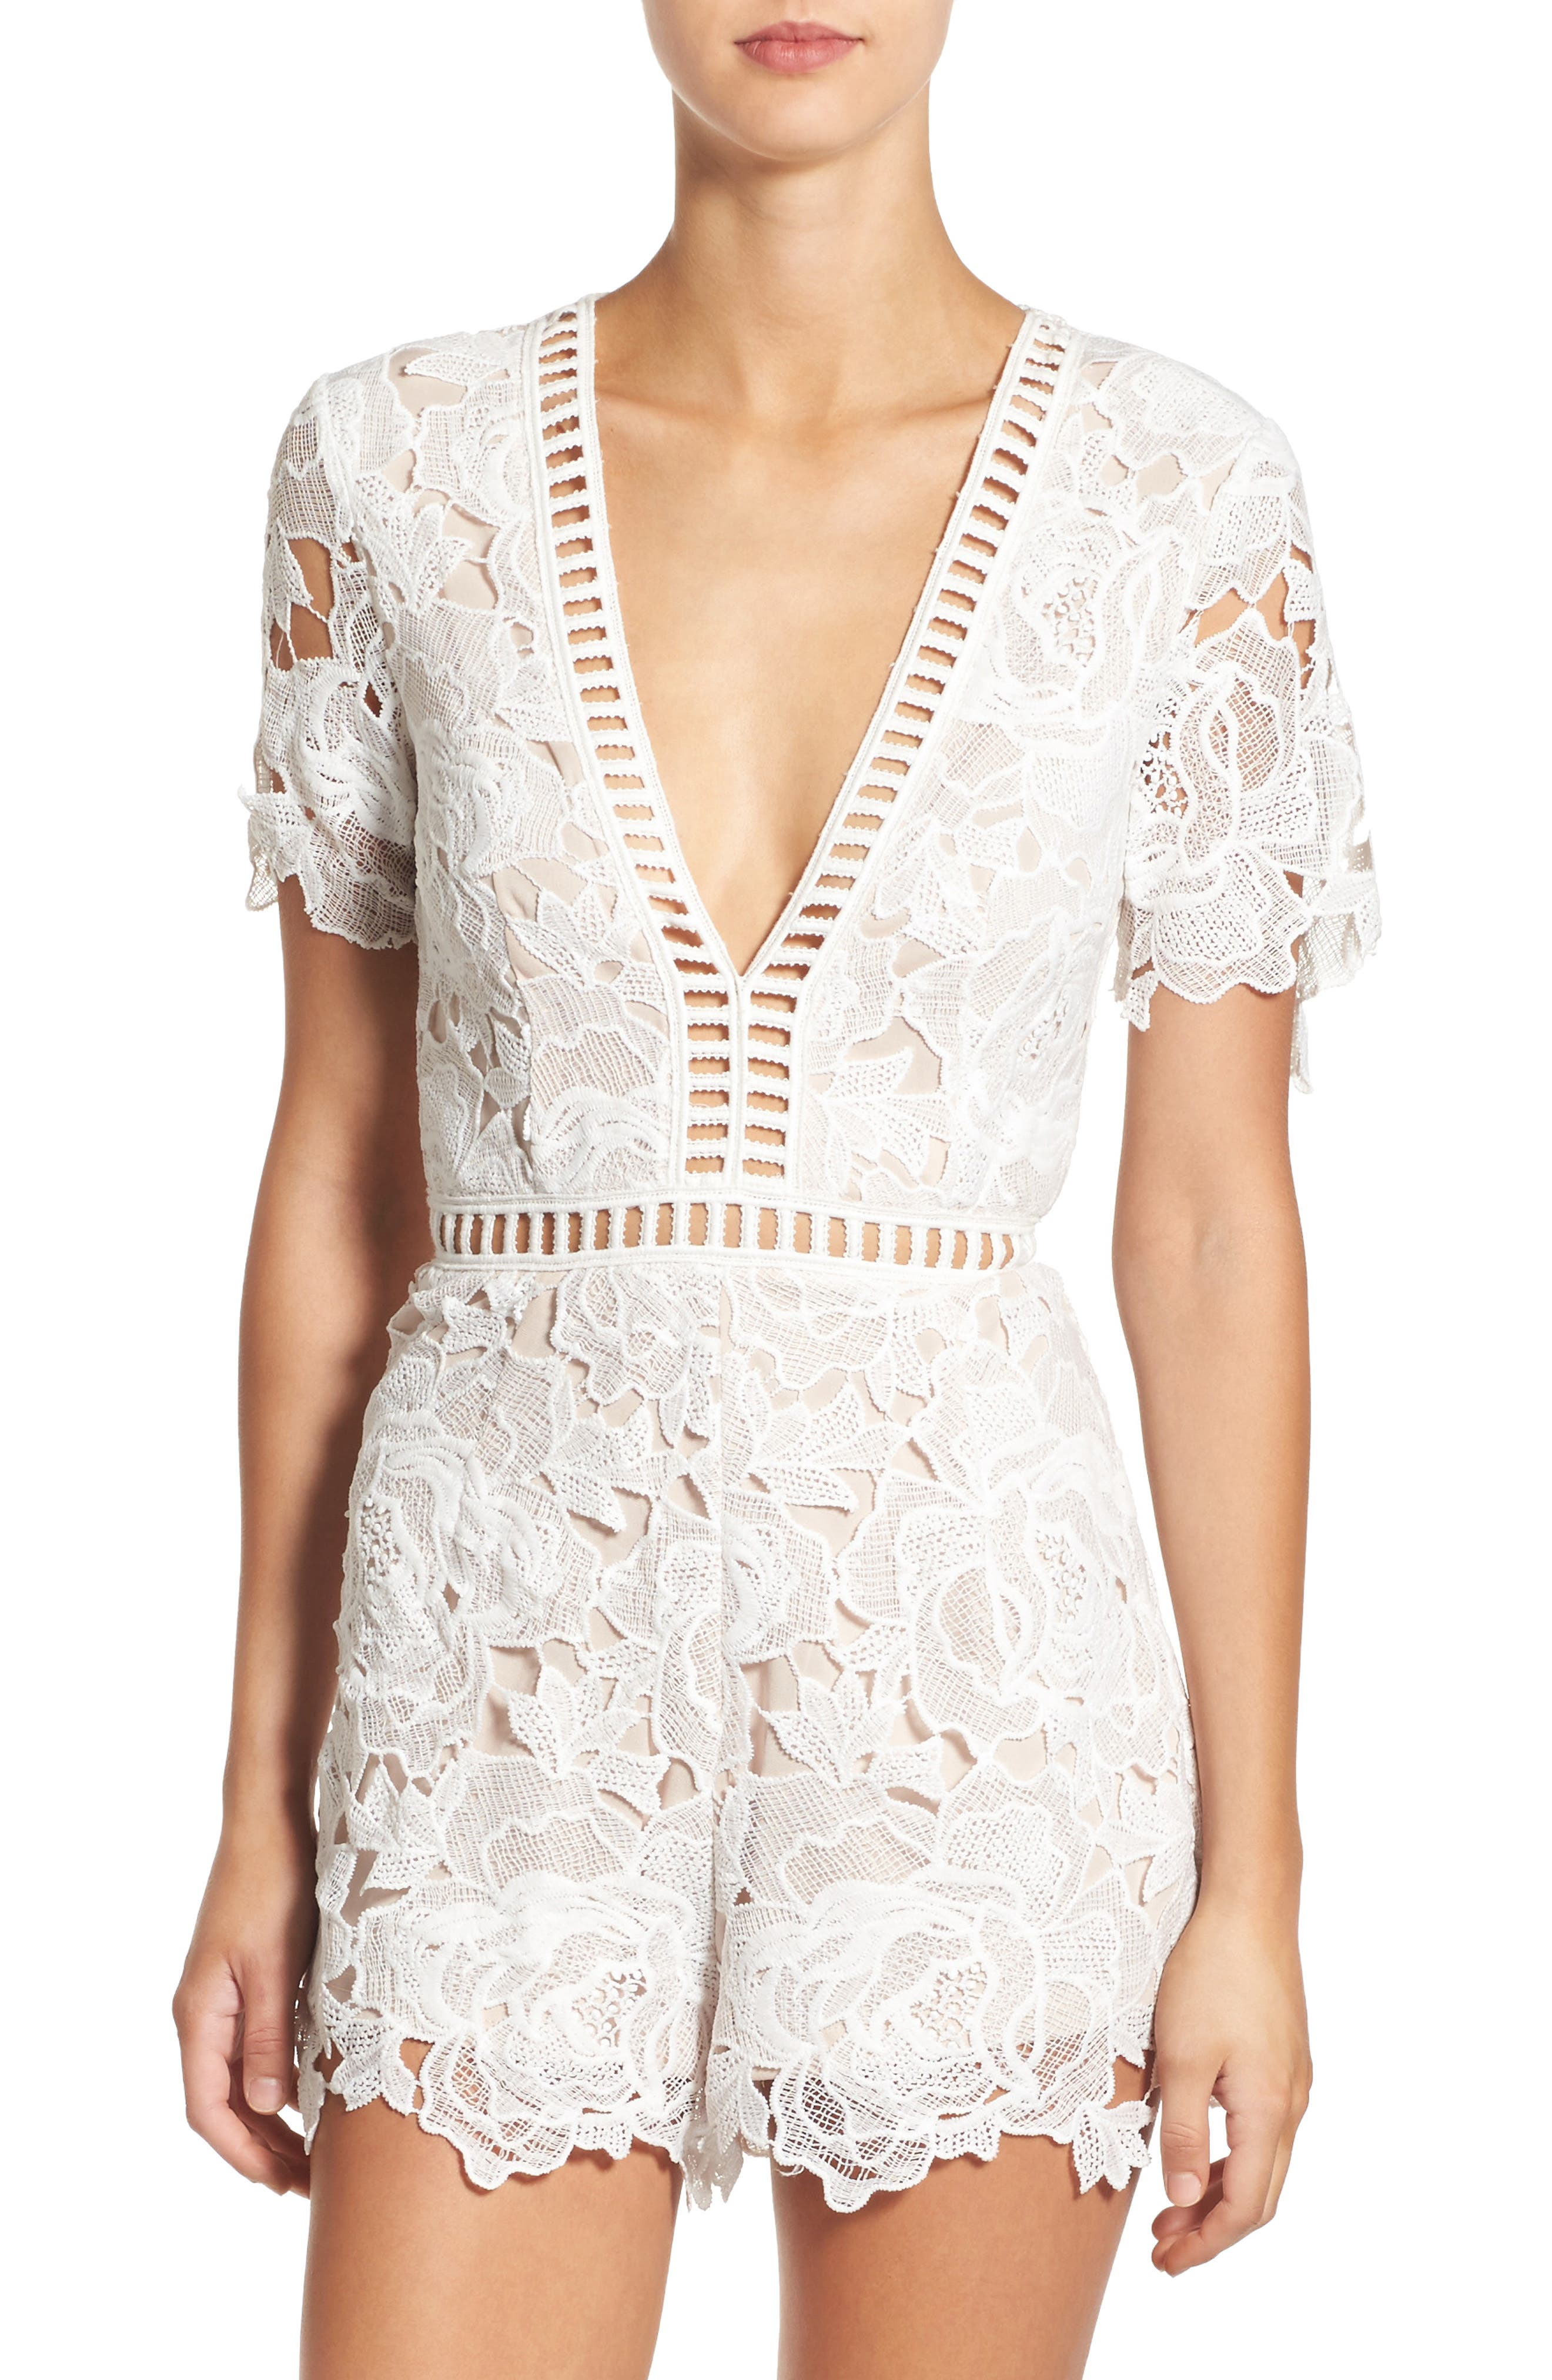 Alternate Image 1 Selected - Missguided Ladder Inset Lace Romper